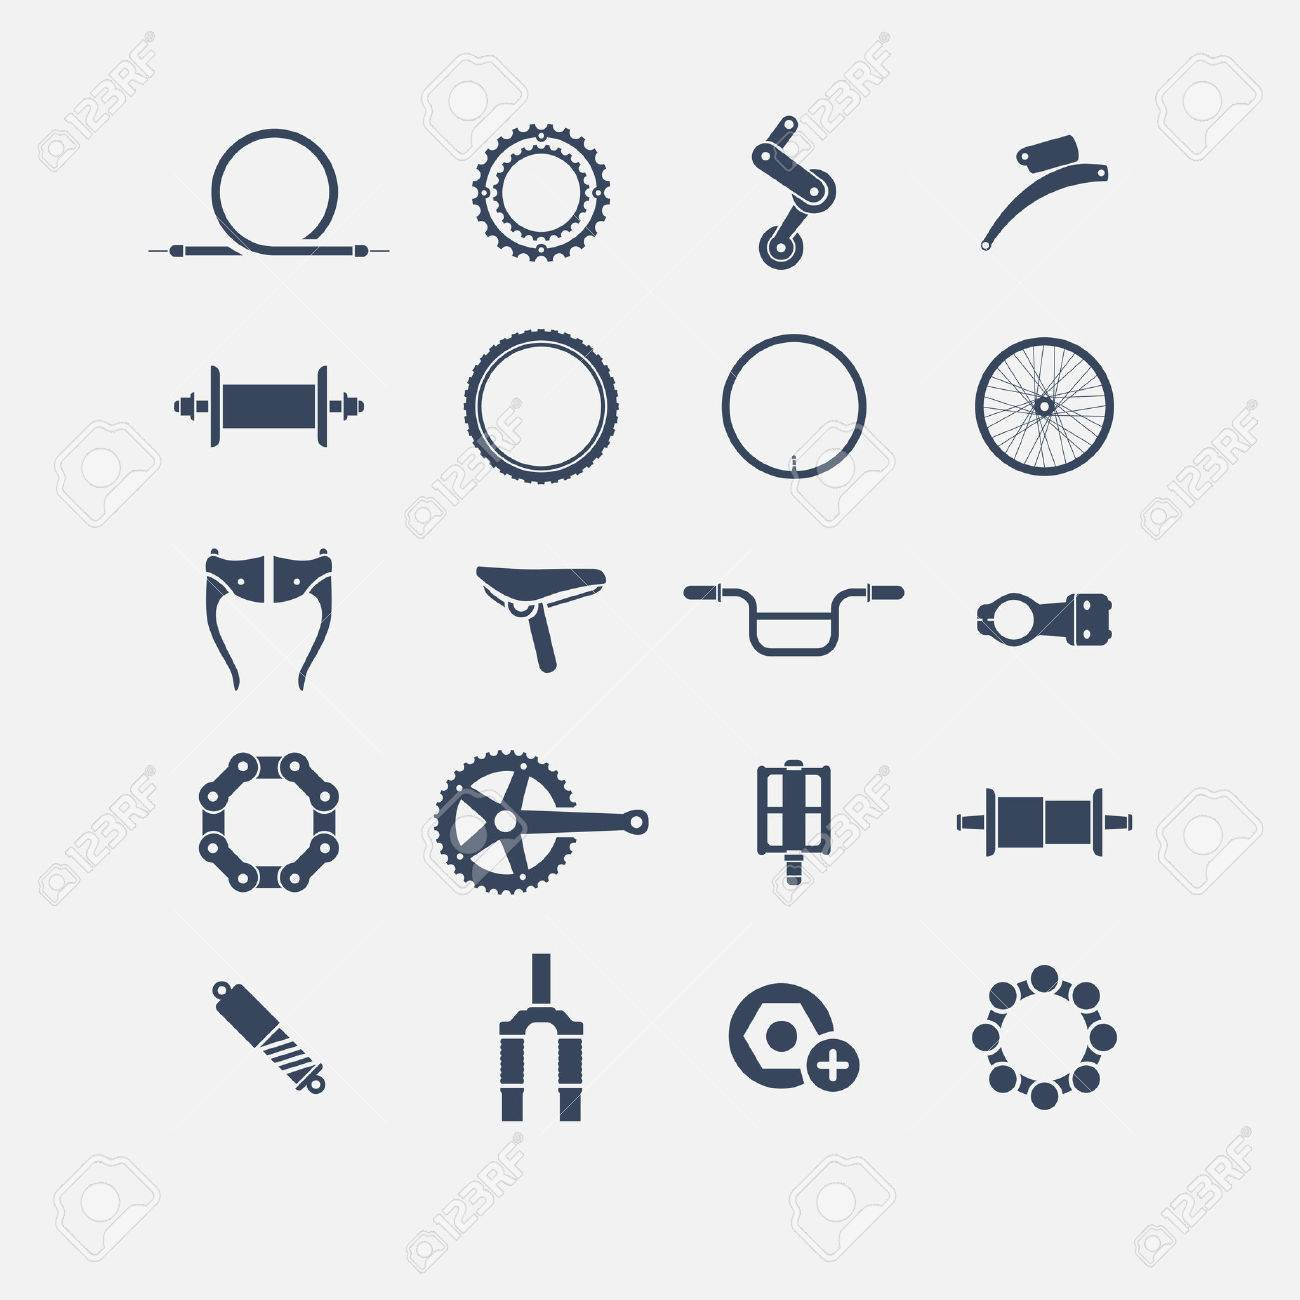 bicycle parts icons, simple icons, icon